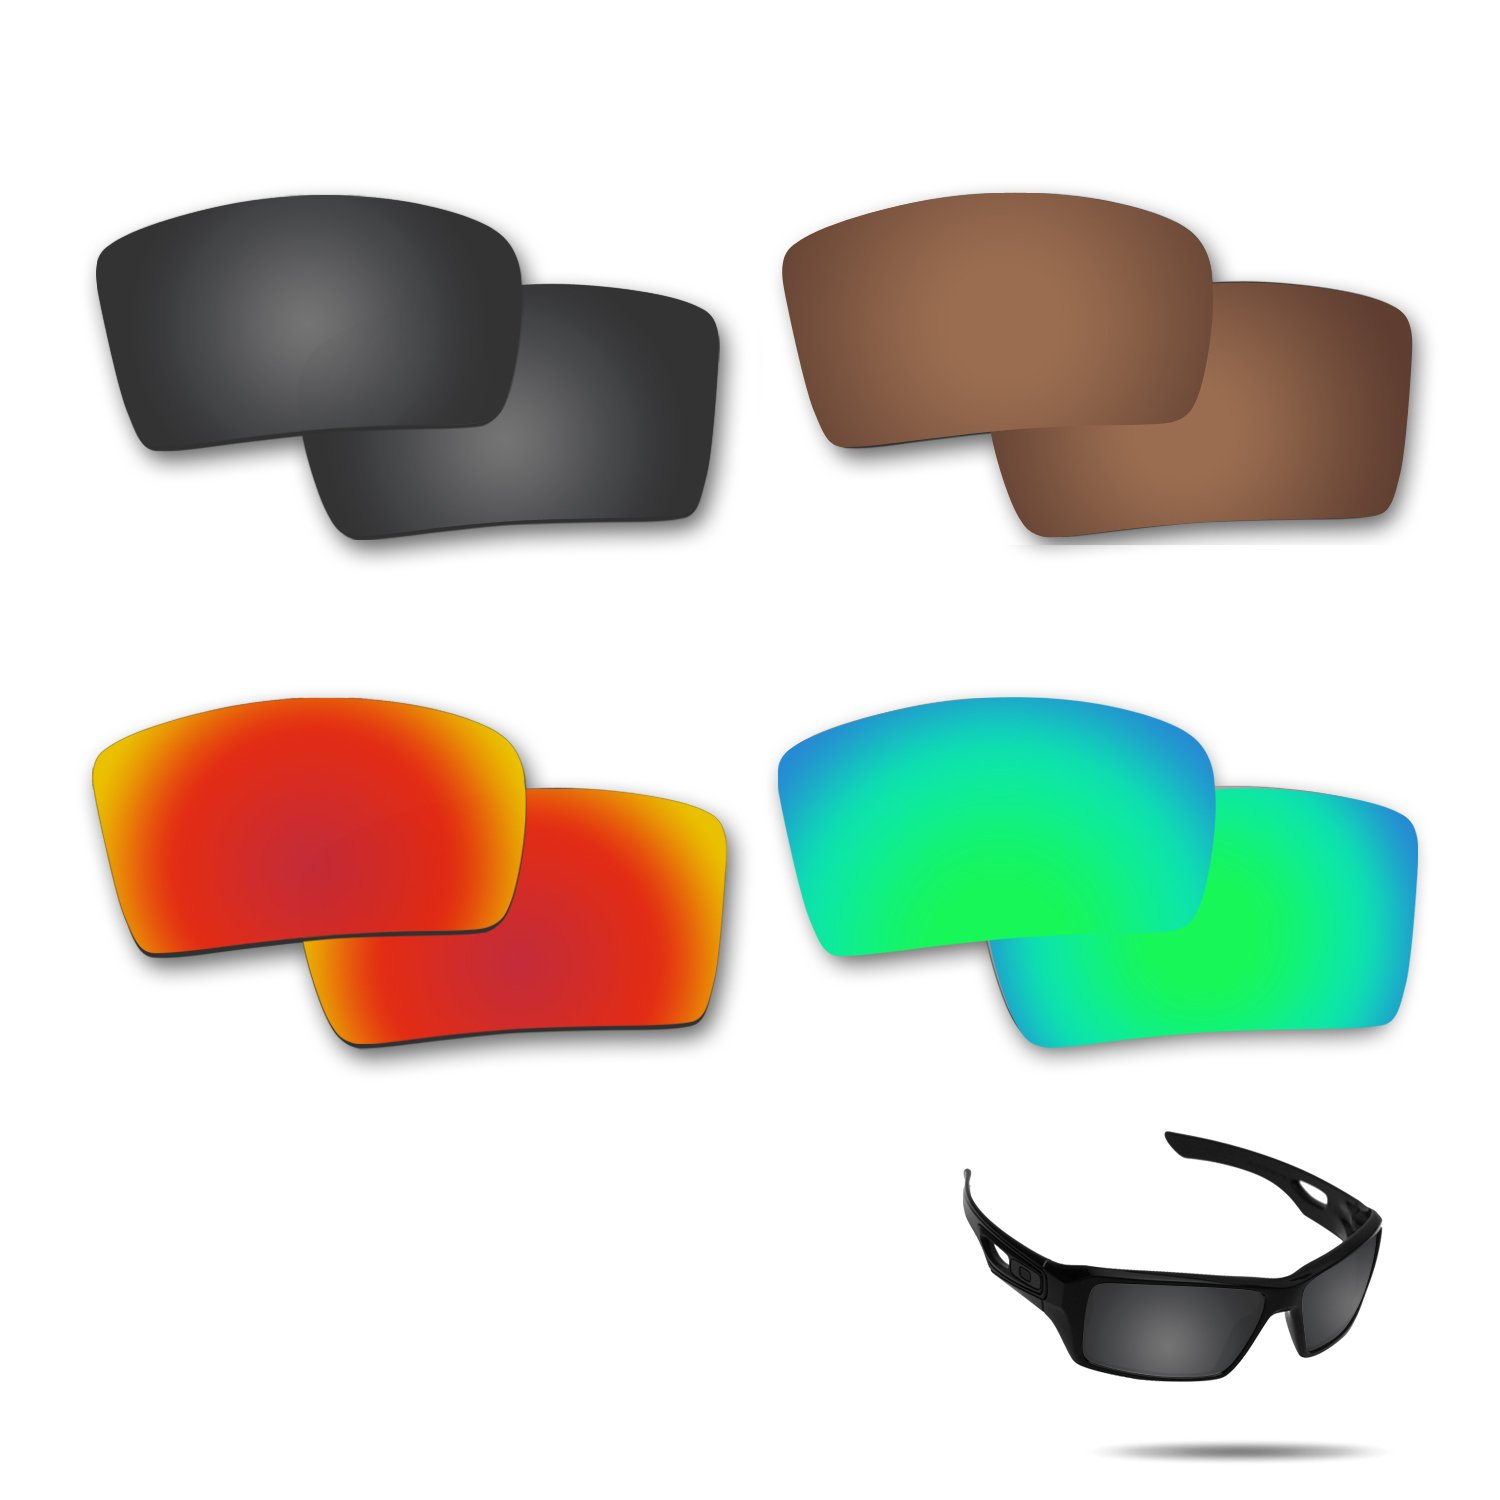 Fiskr Anti-saltwater Polarized Replacement Lenses for Oakley Eyepatch 2 Sunglasses 4 Pairs